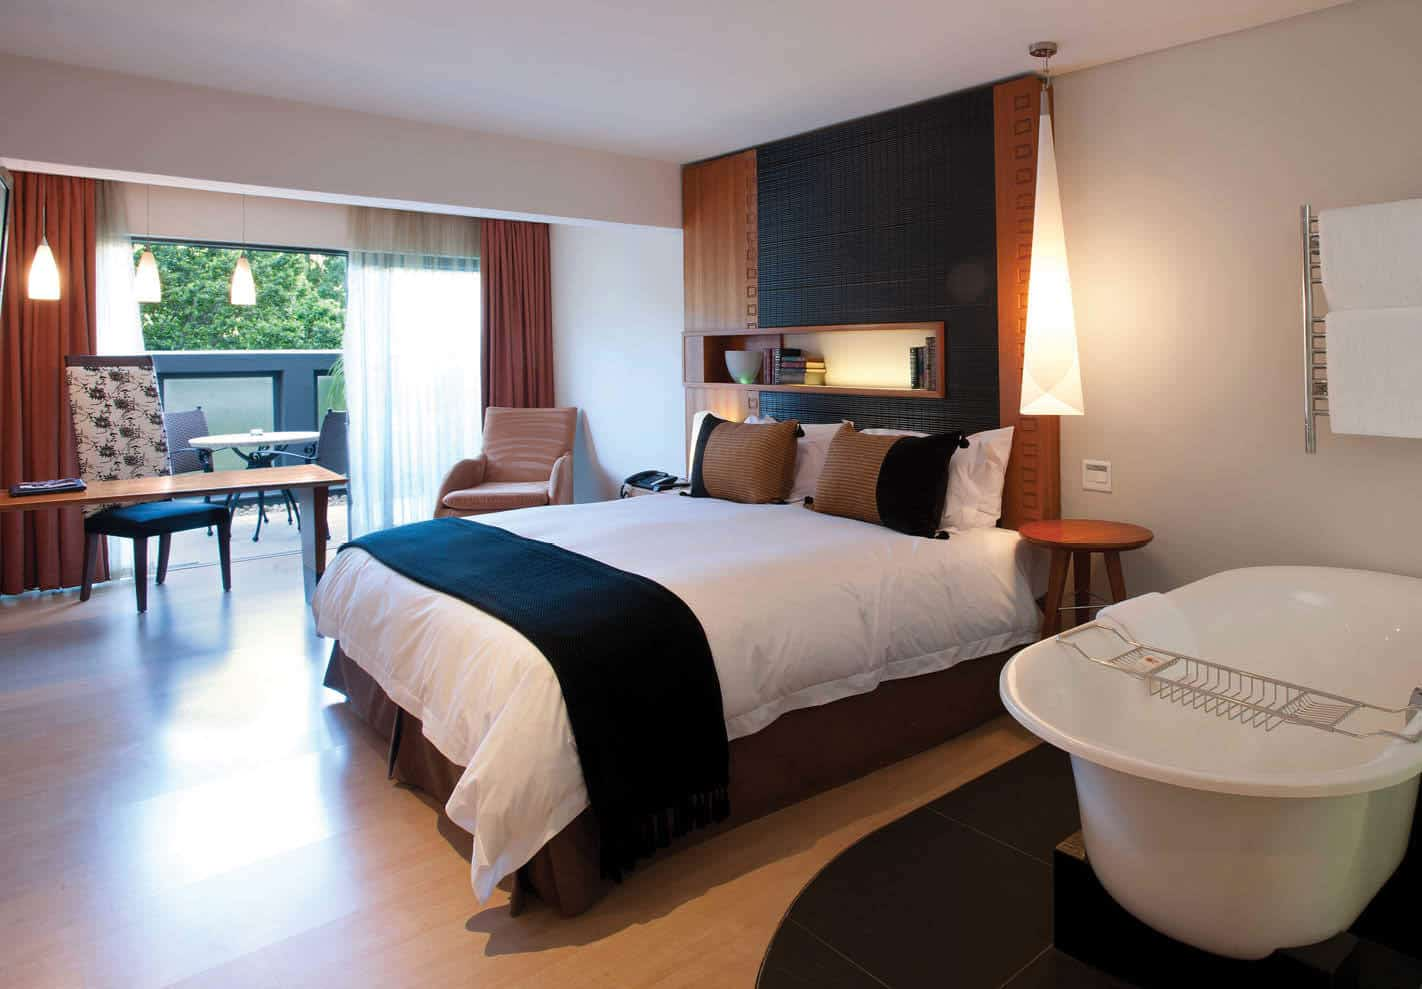 Townhouse Hotel City Centre Cape Town South Africa